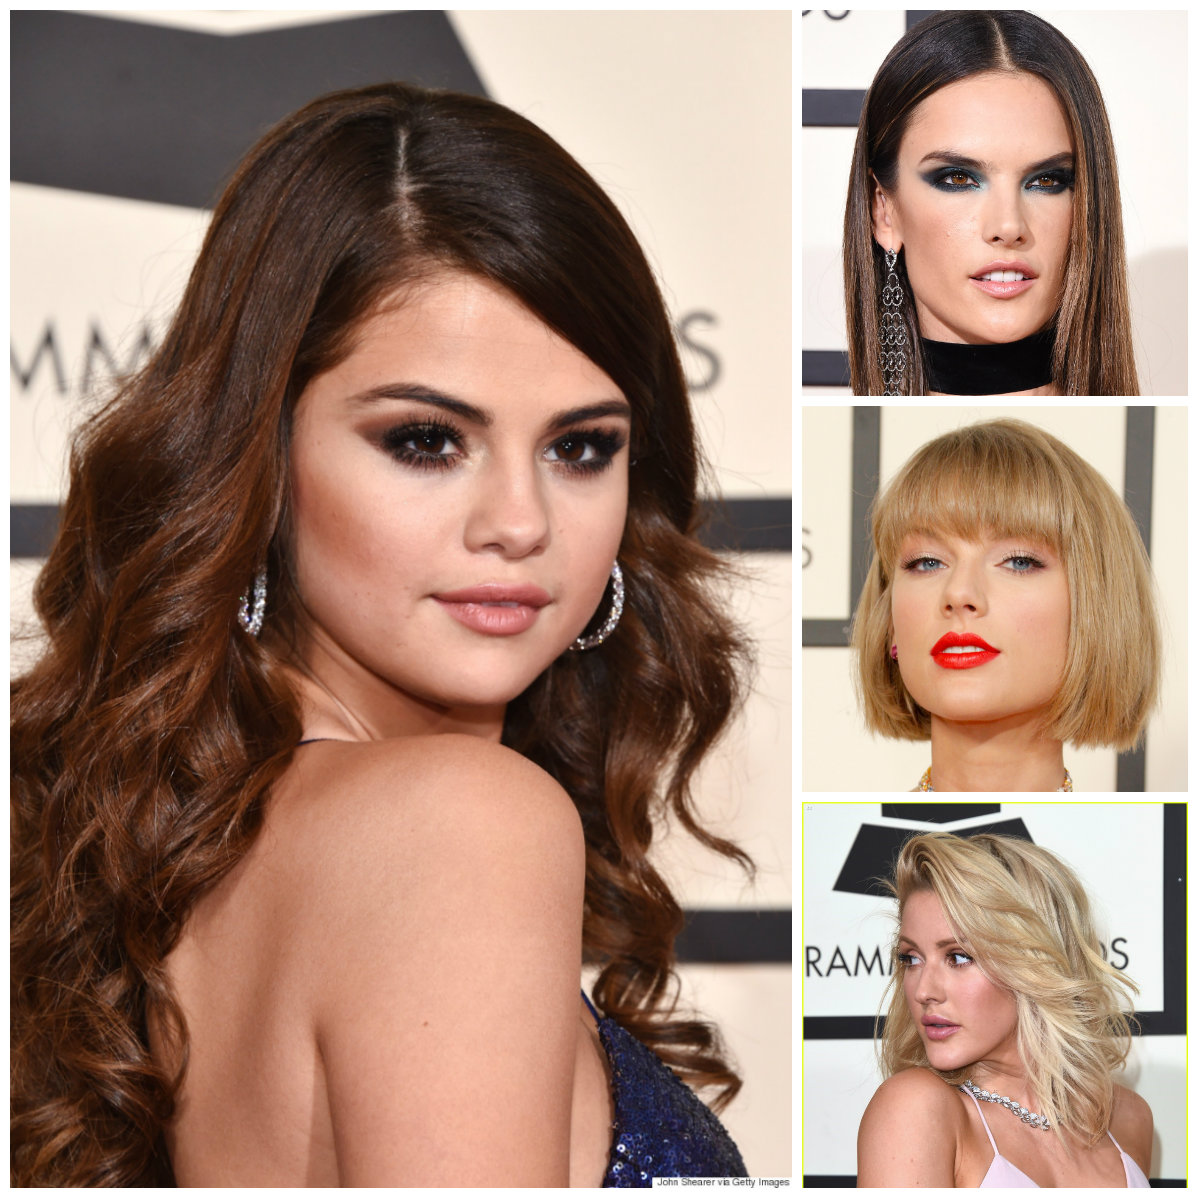 Grammy Awards 2016 celebrity hairstyles